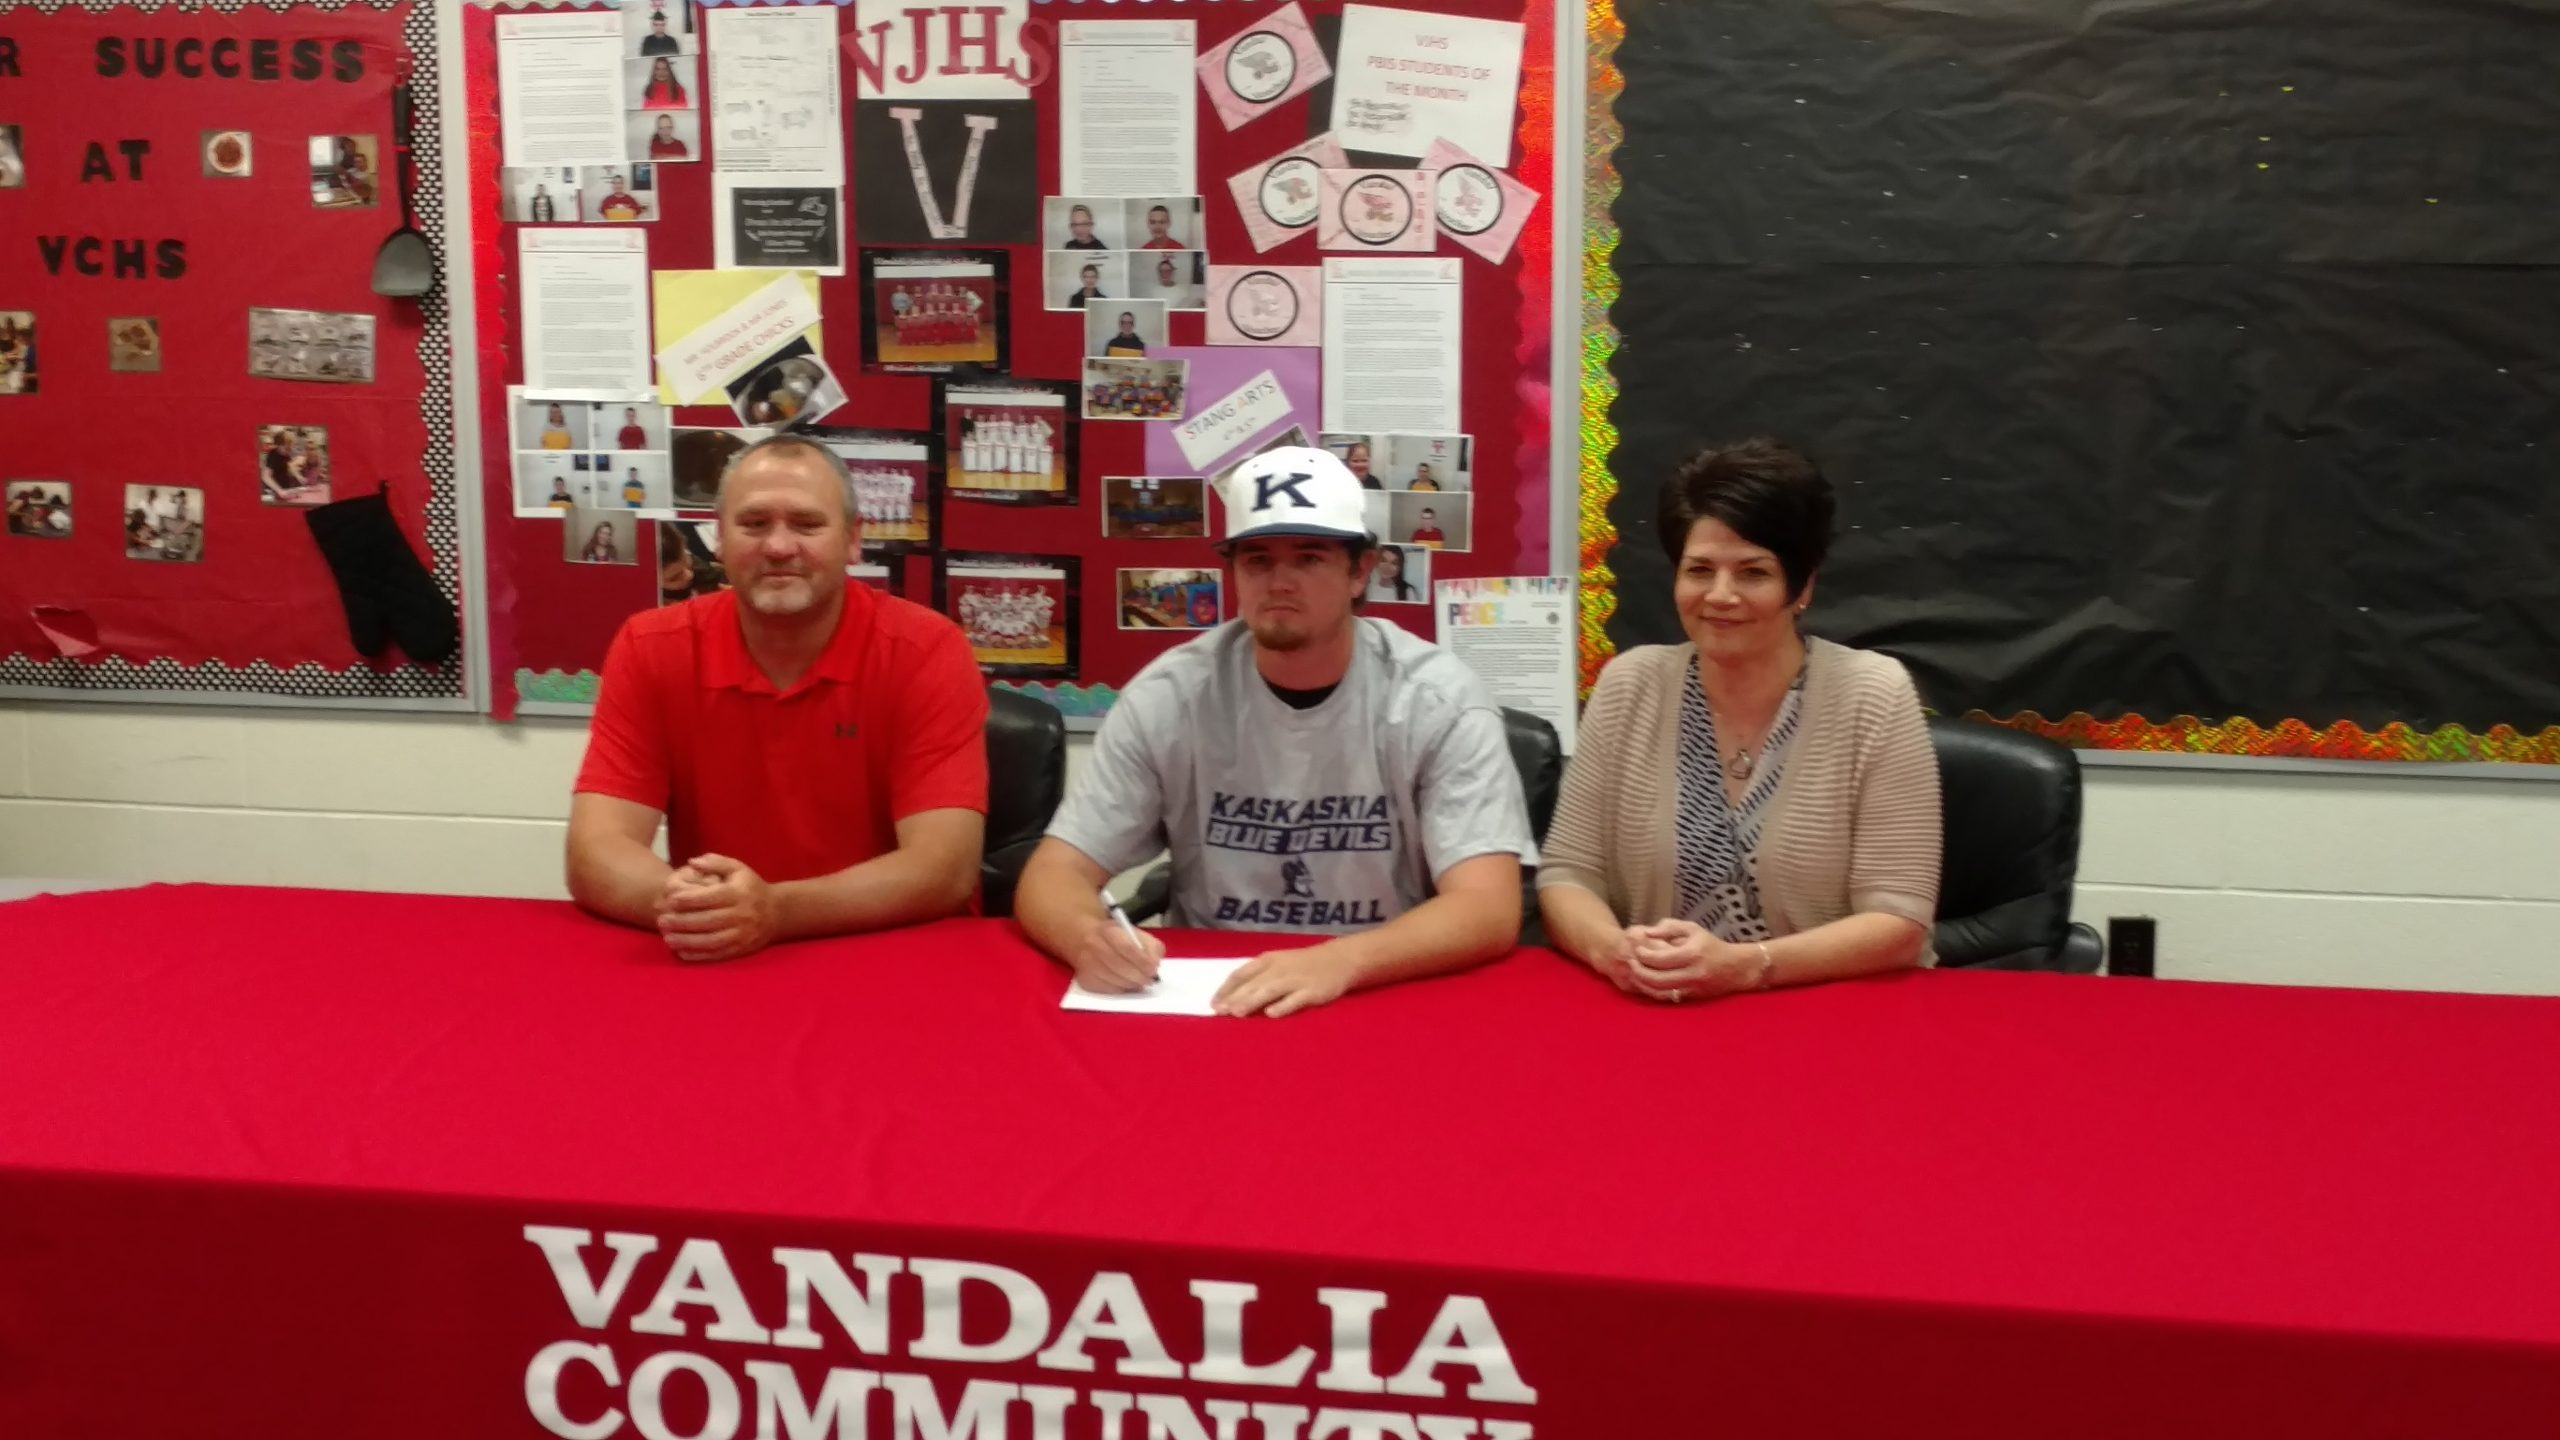 VCHS Grad Nathan Casey will attend, play baseball at Kaskaskia College